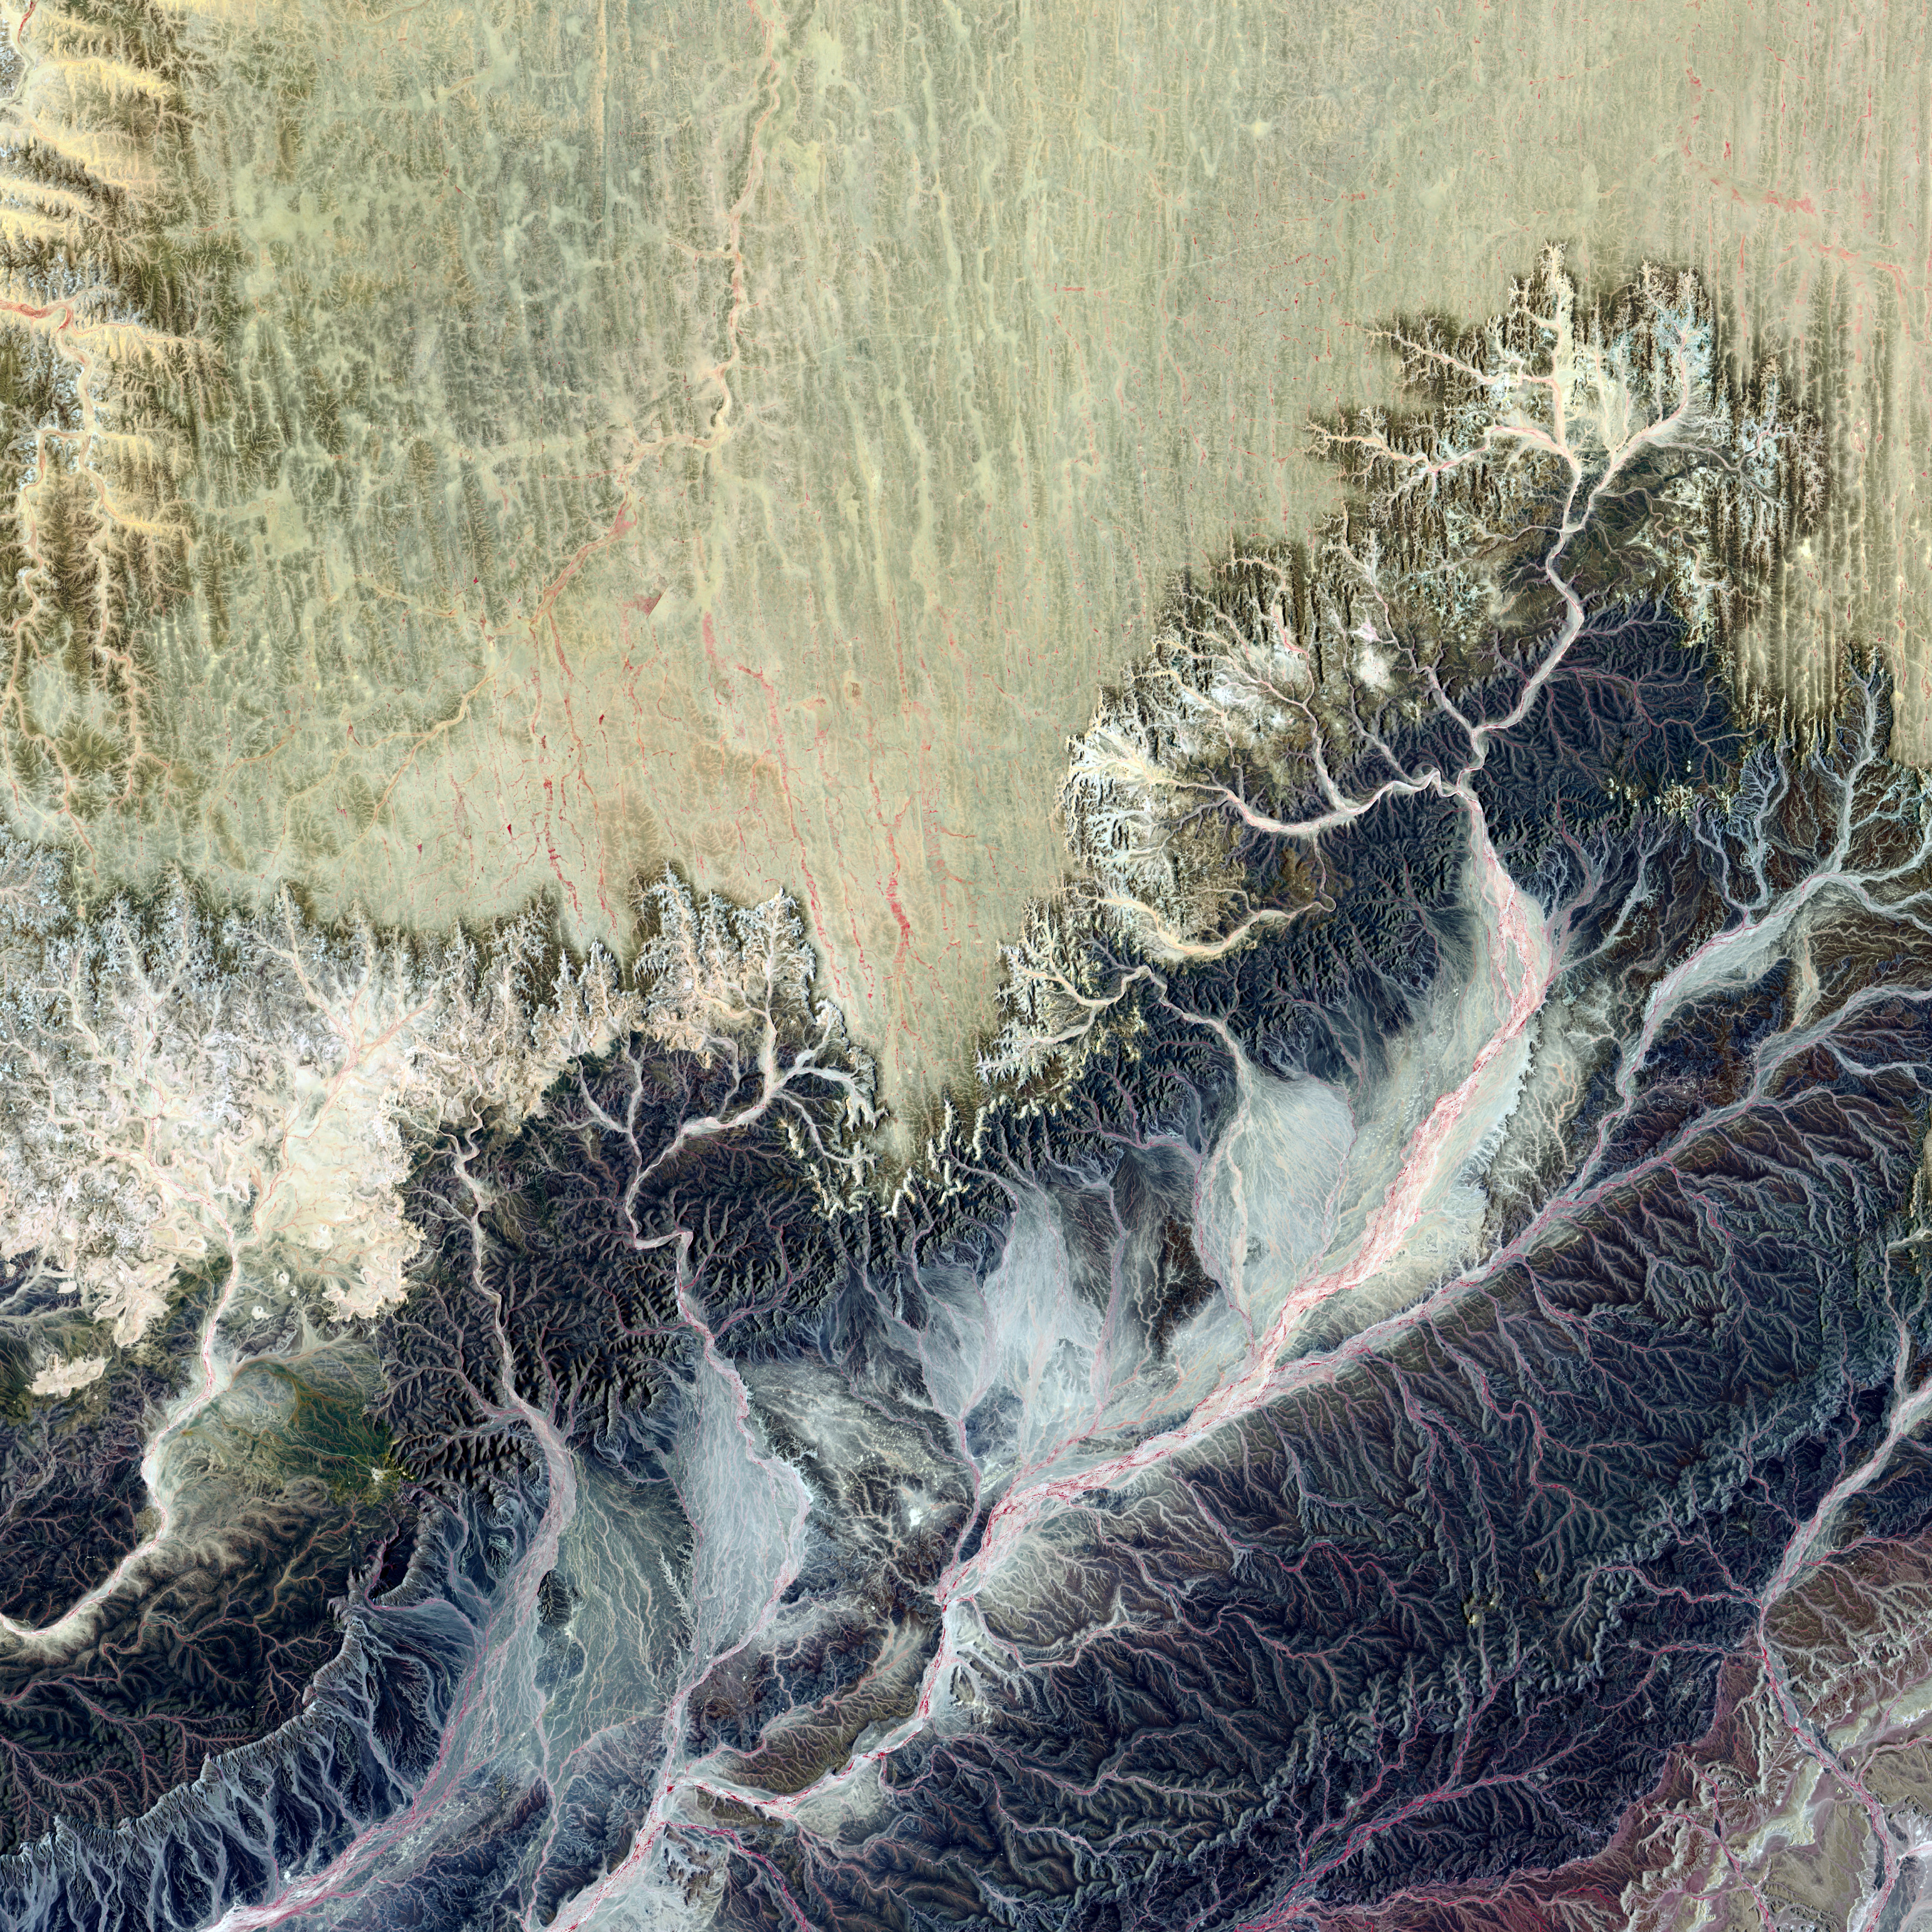 This natural landscape might appear more like a medical illustration of itchy nerve endings. In Western Sahara, Africa, an intense network of wadis drains toward the west, eventually reaching the Atlantic Ocean. These drainage courses are almost always dry in this remote part of the Sahara Desert.